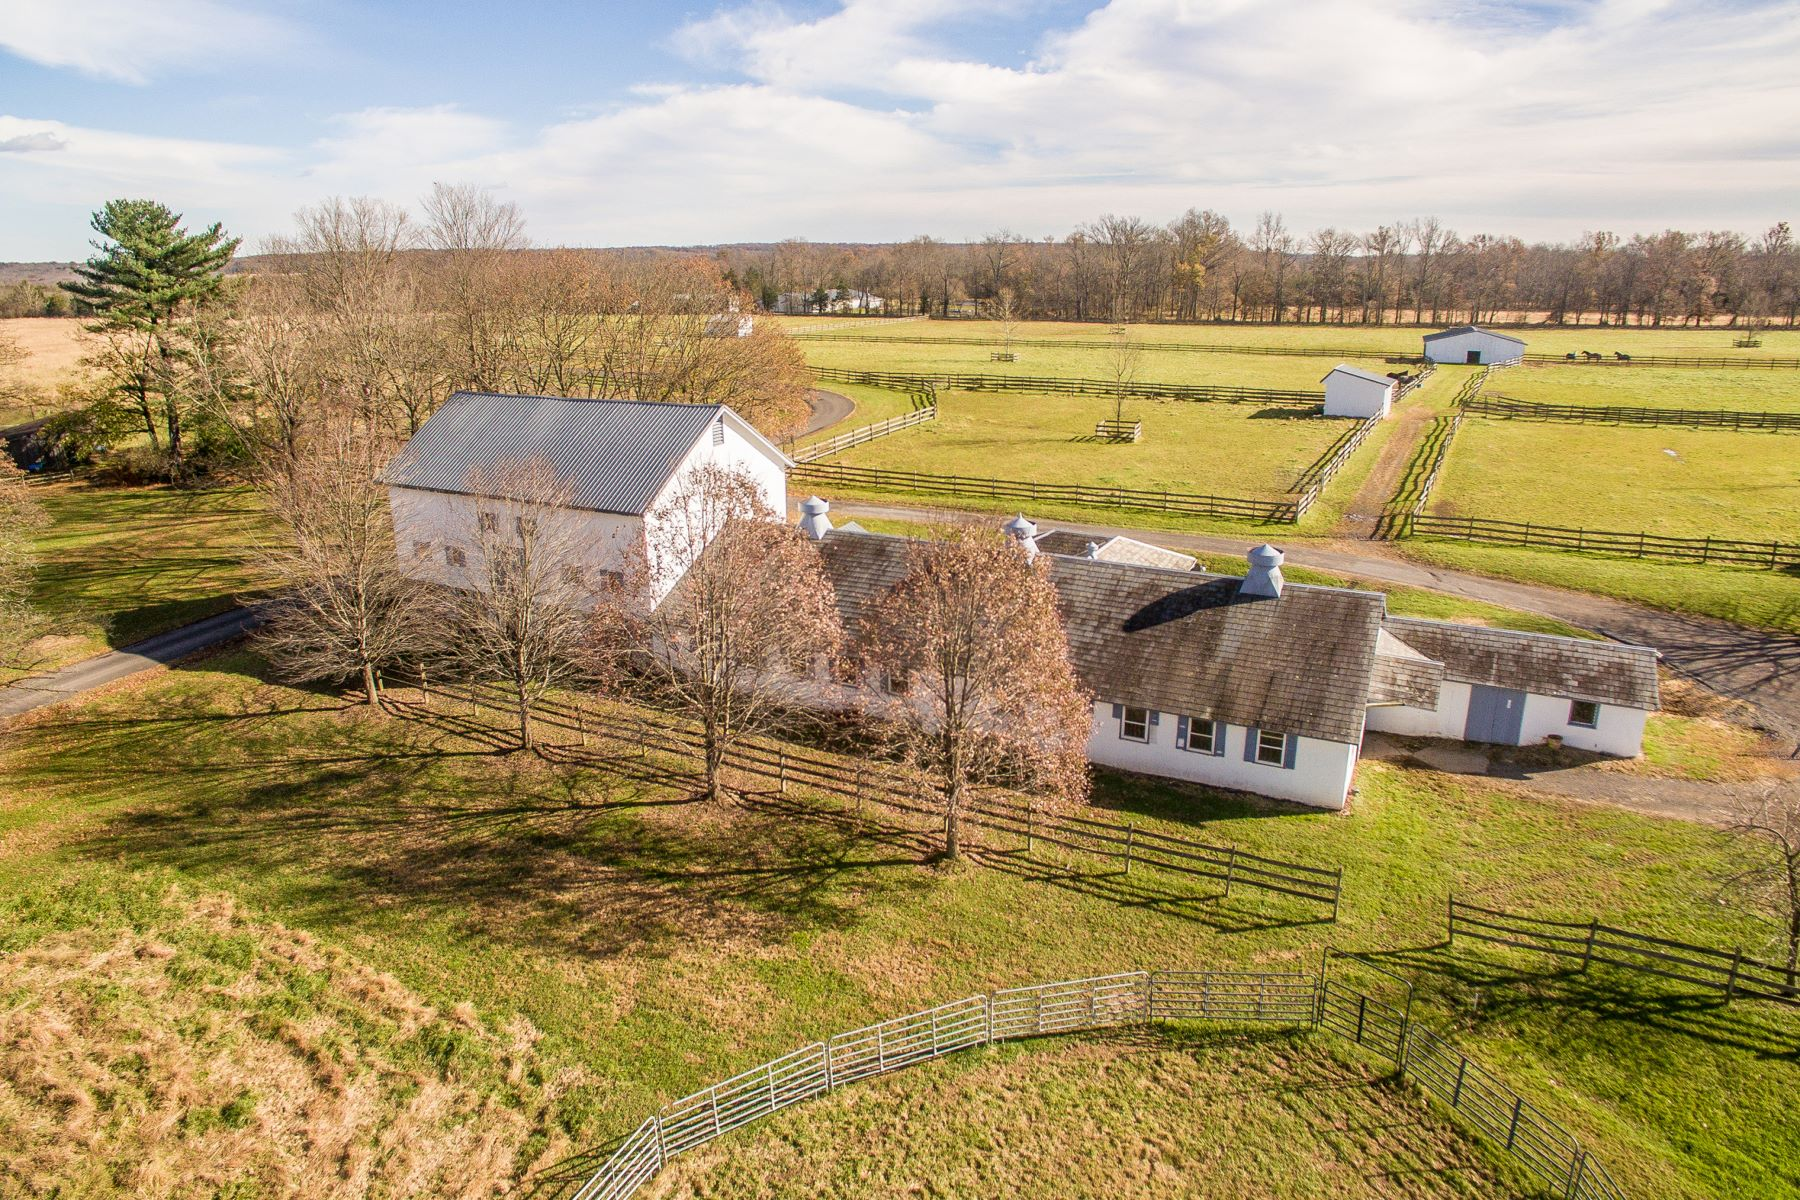 Land for Sale at Come Along Farm 55 MUNICIPAL RD, Pipersville, Pennsylvania 18947 United States